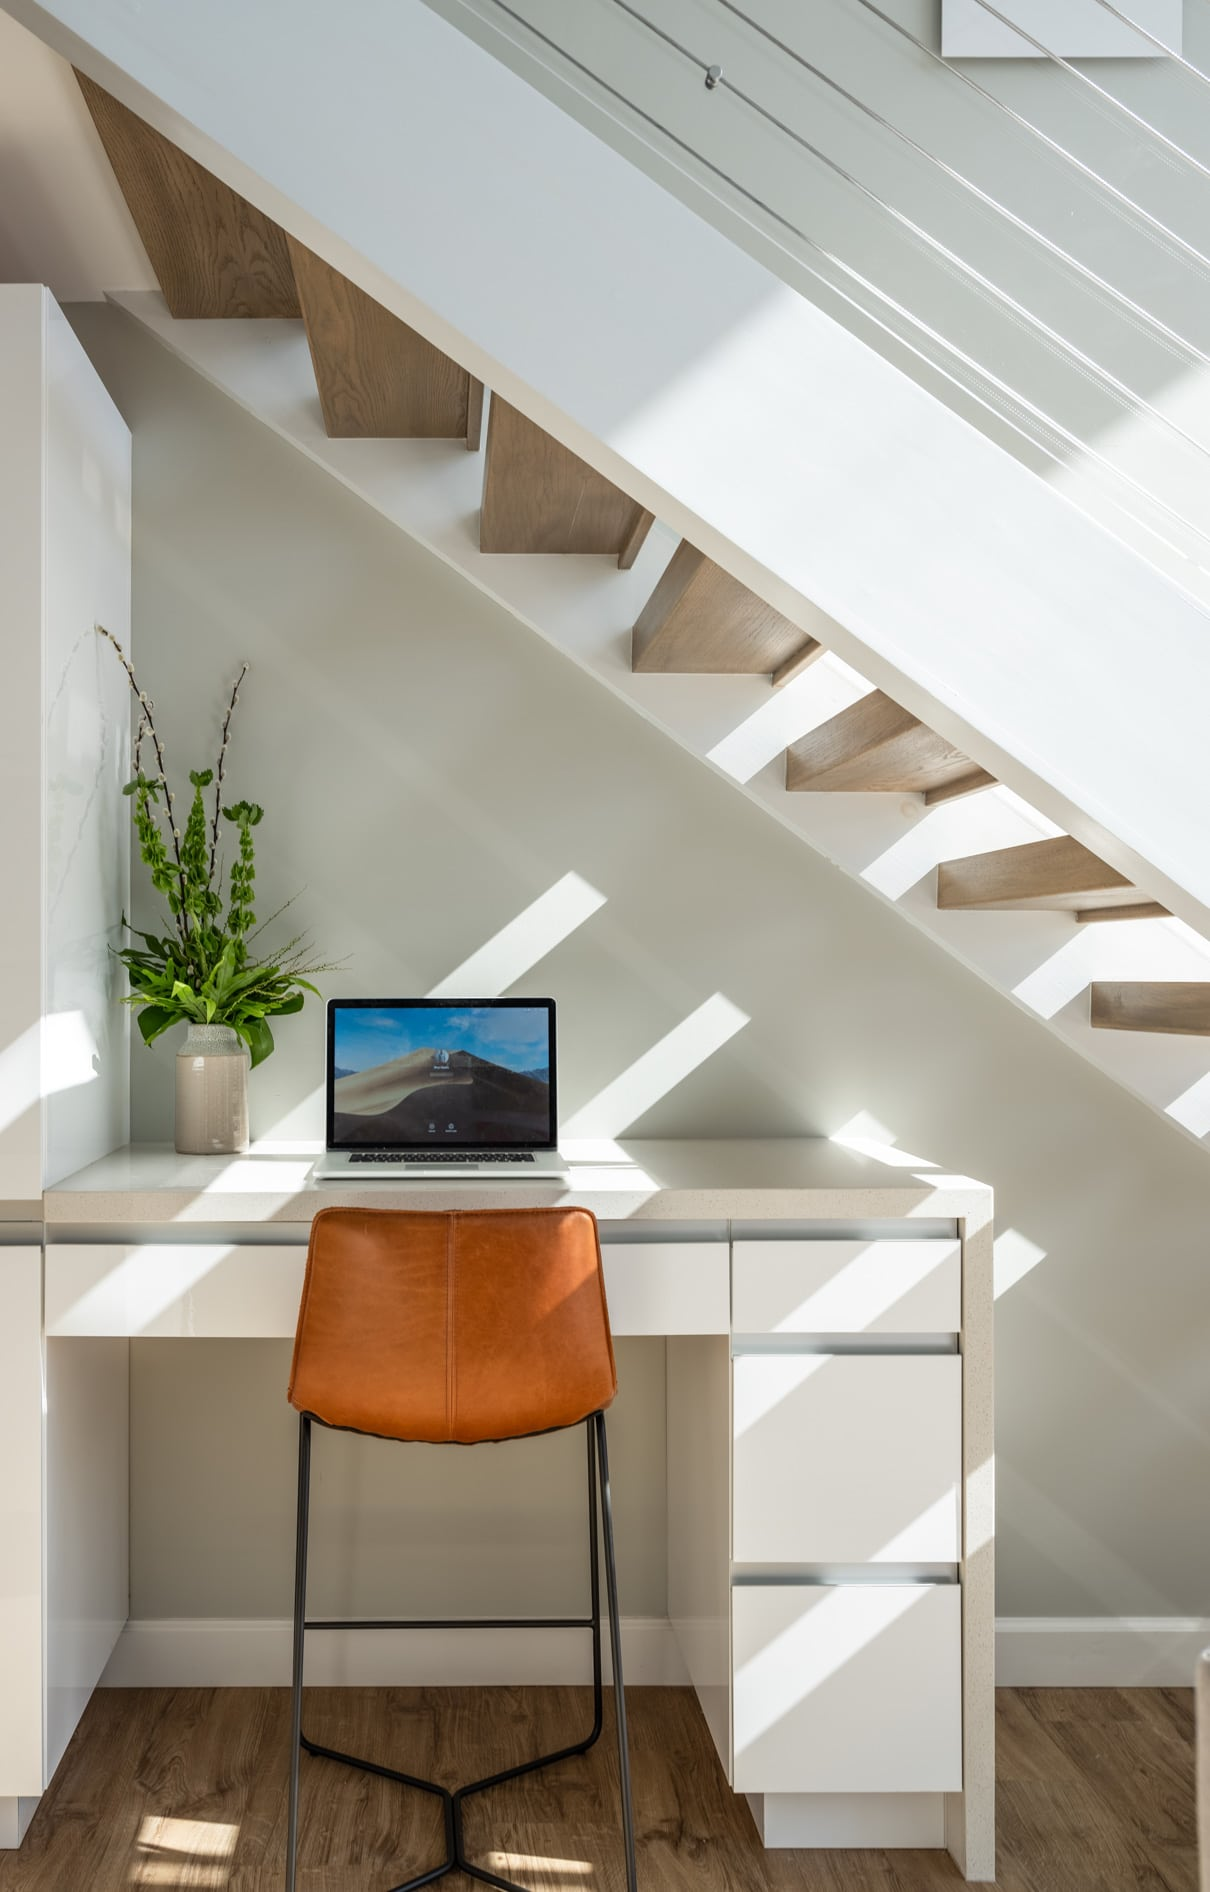 A desk with an open laptop below a staircase.